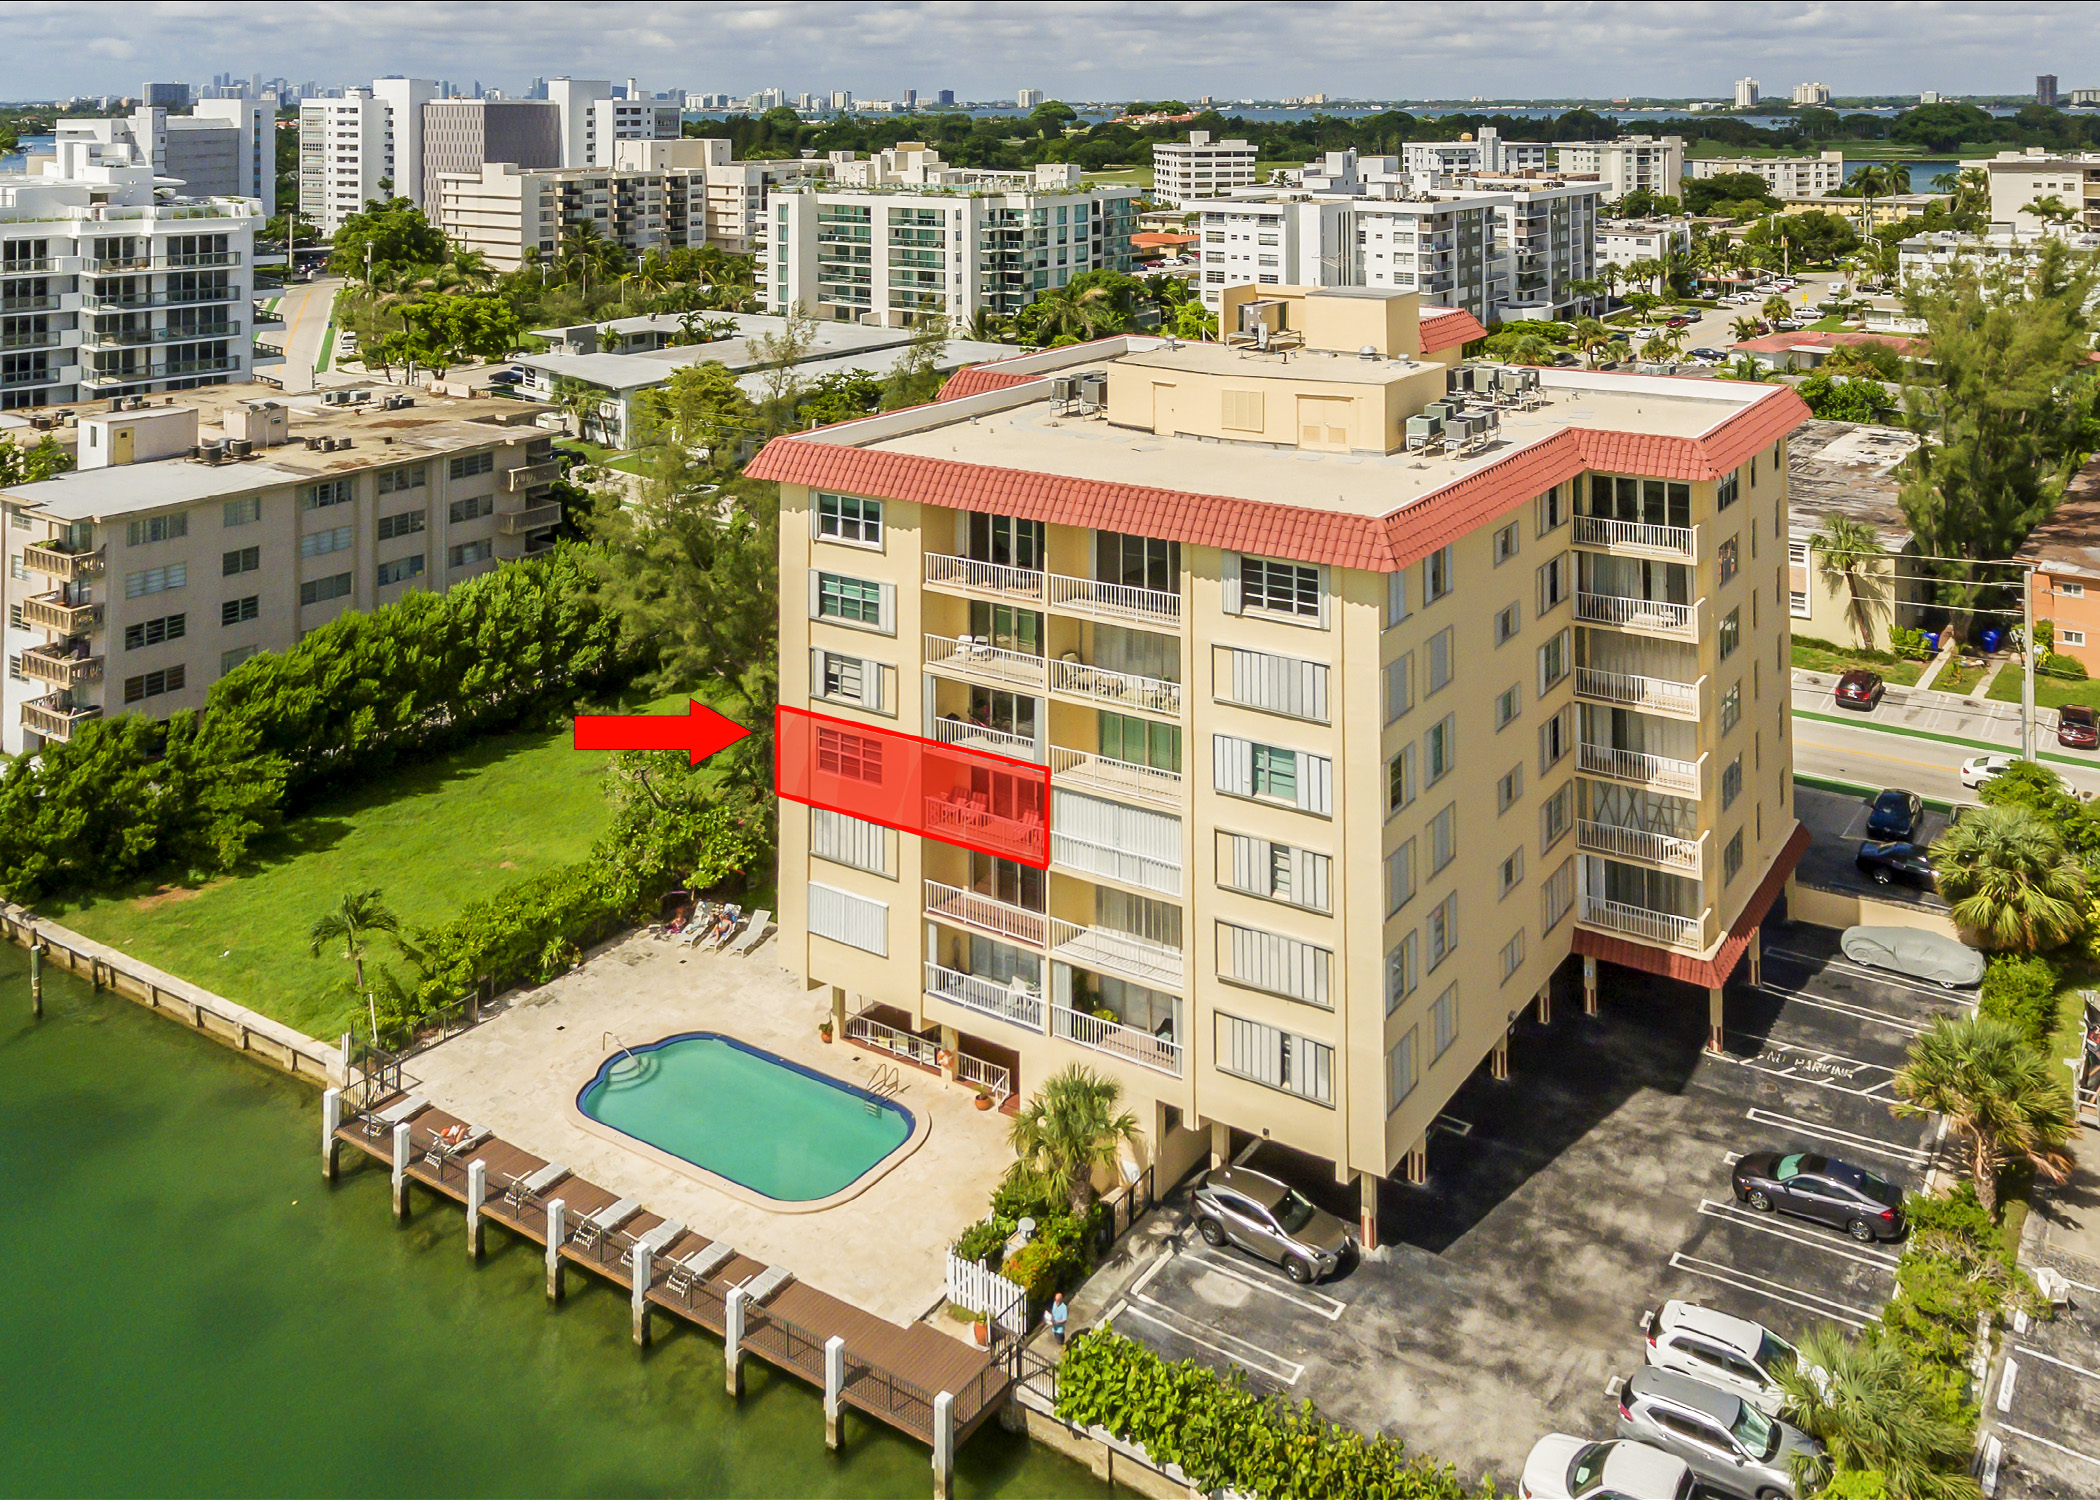 Aerial Photography in Miami Florida